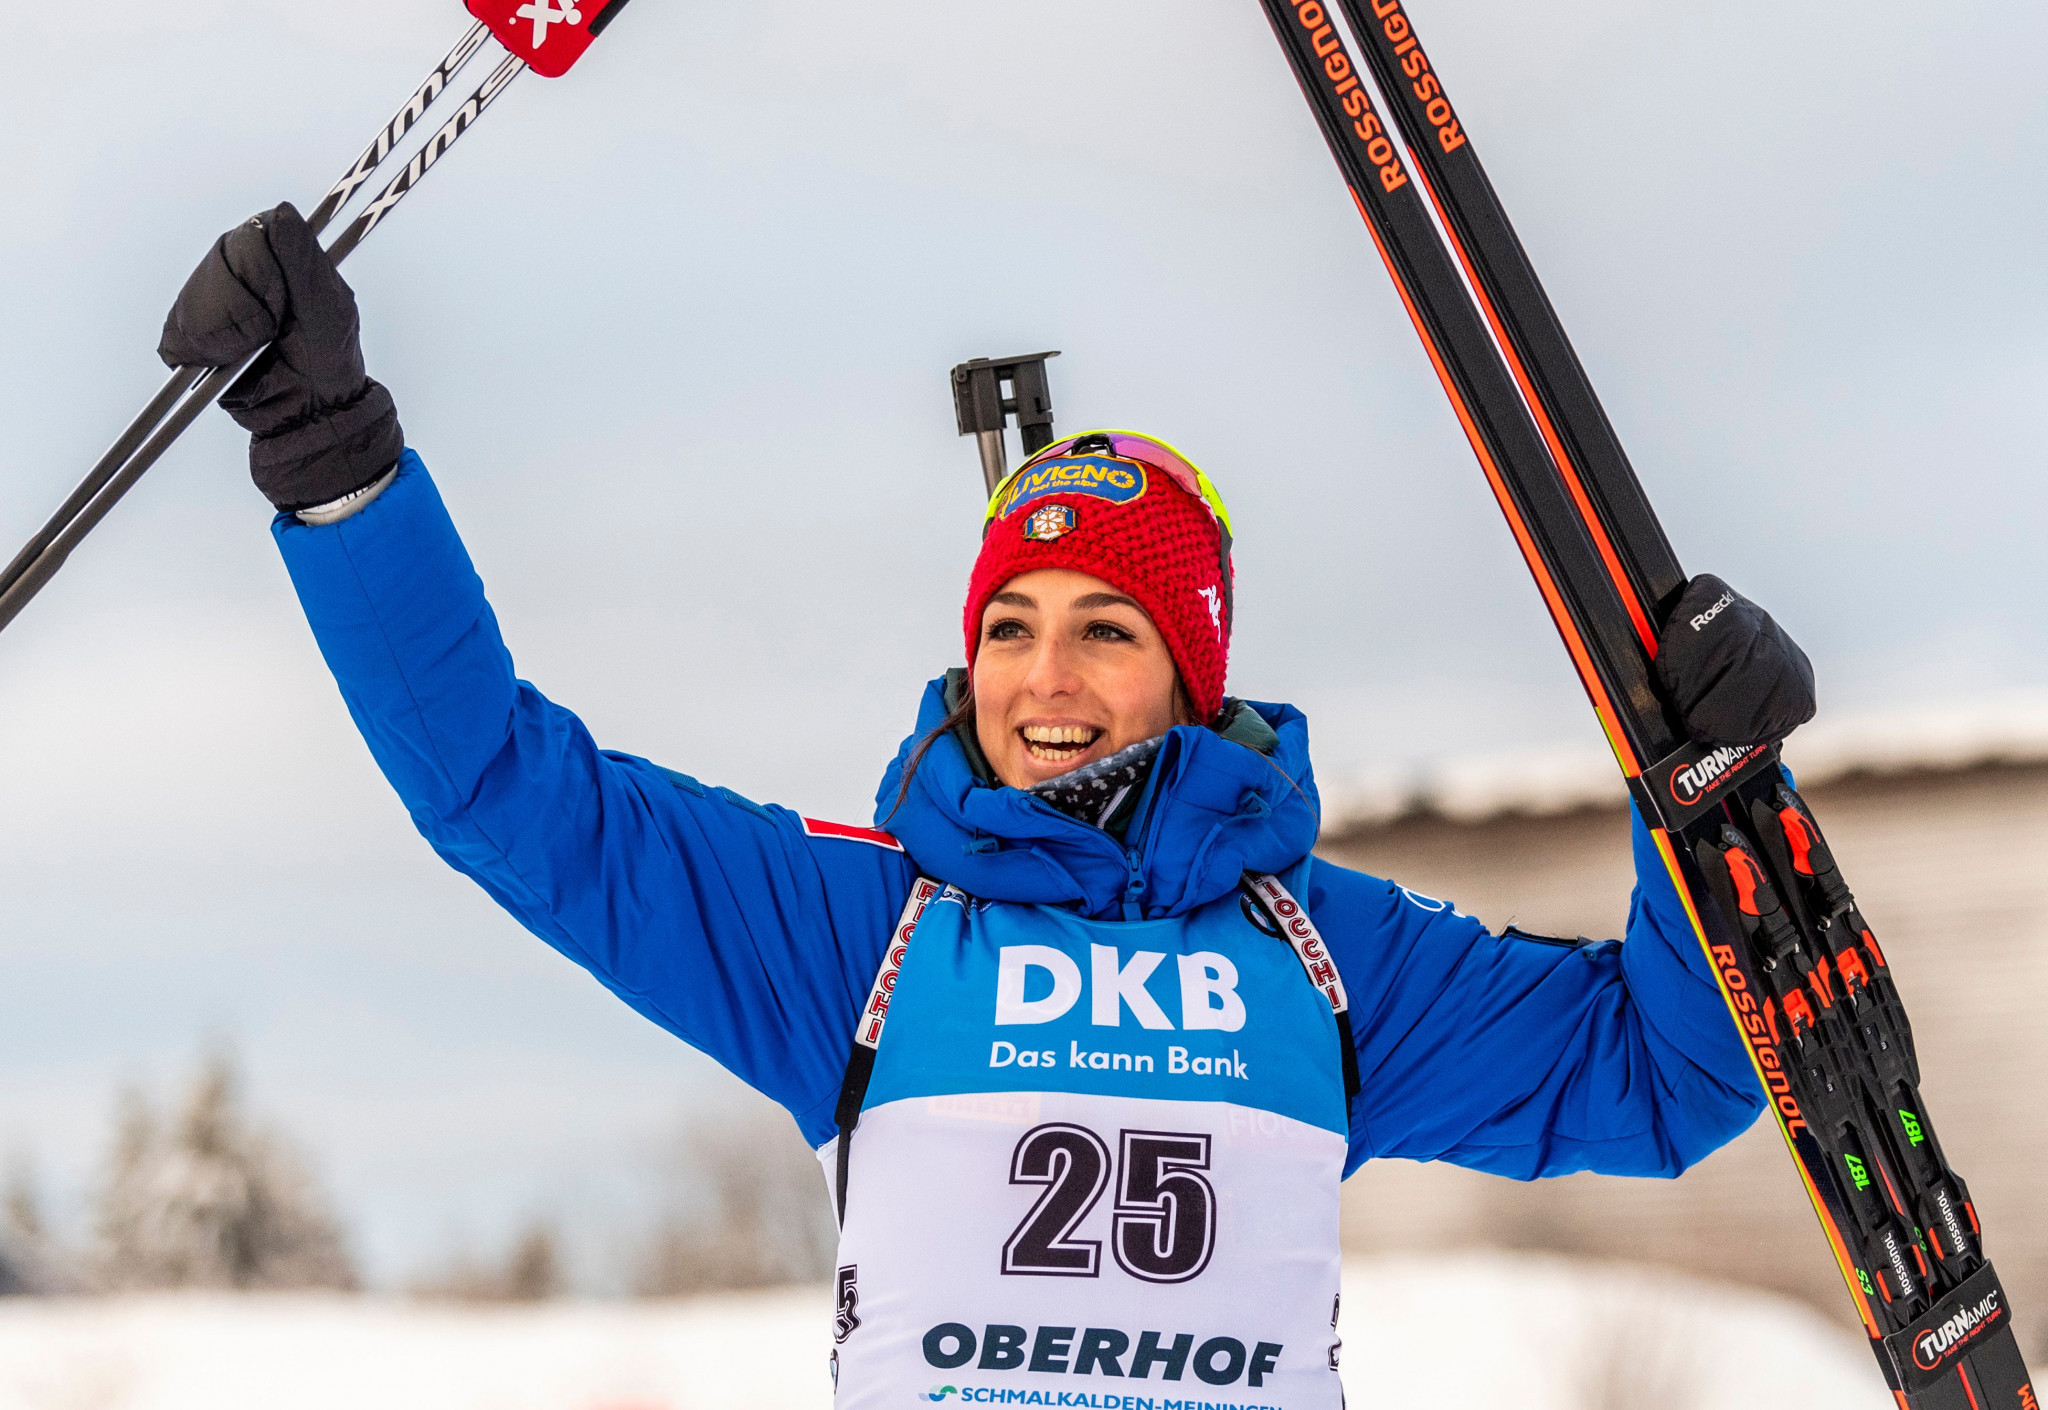 Vittozzi claims first Biathlon World Cup win with sprint victory in Oberhof